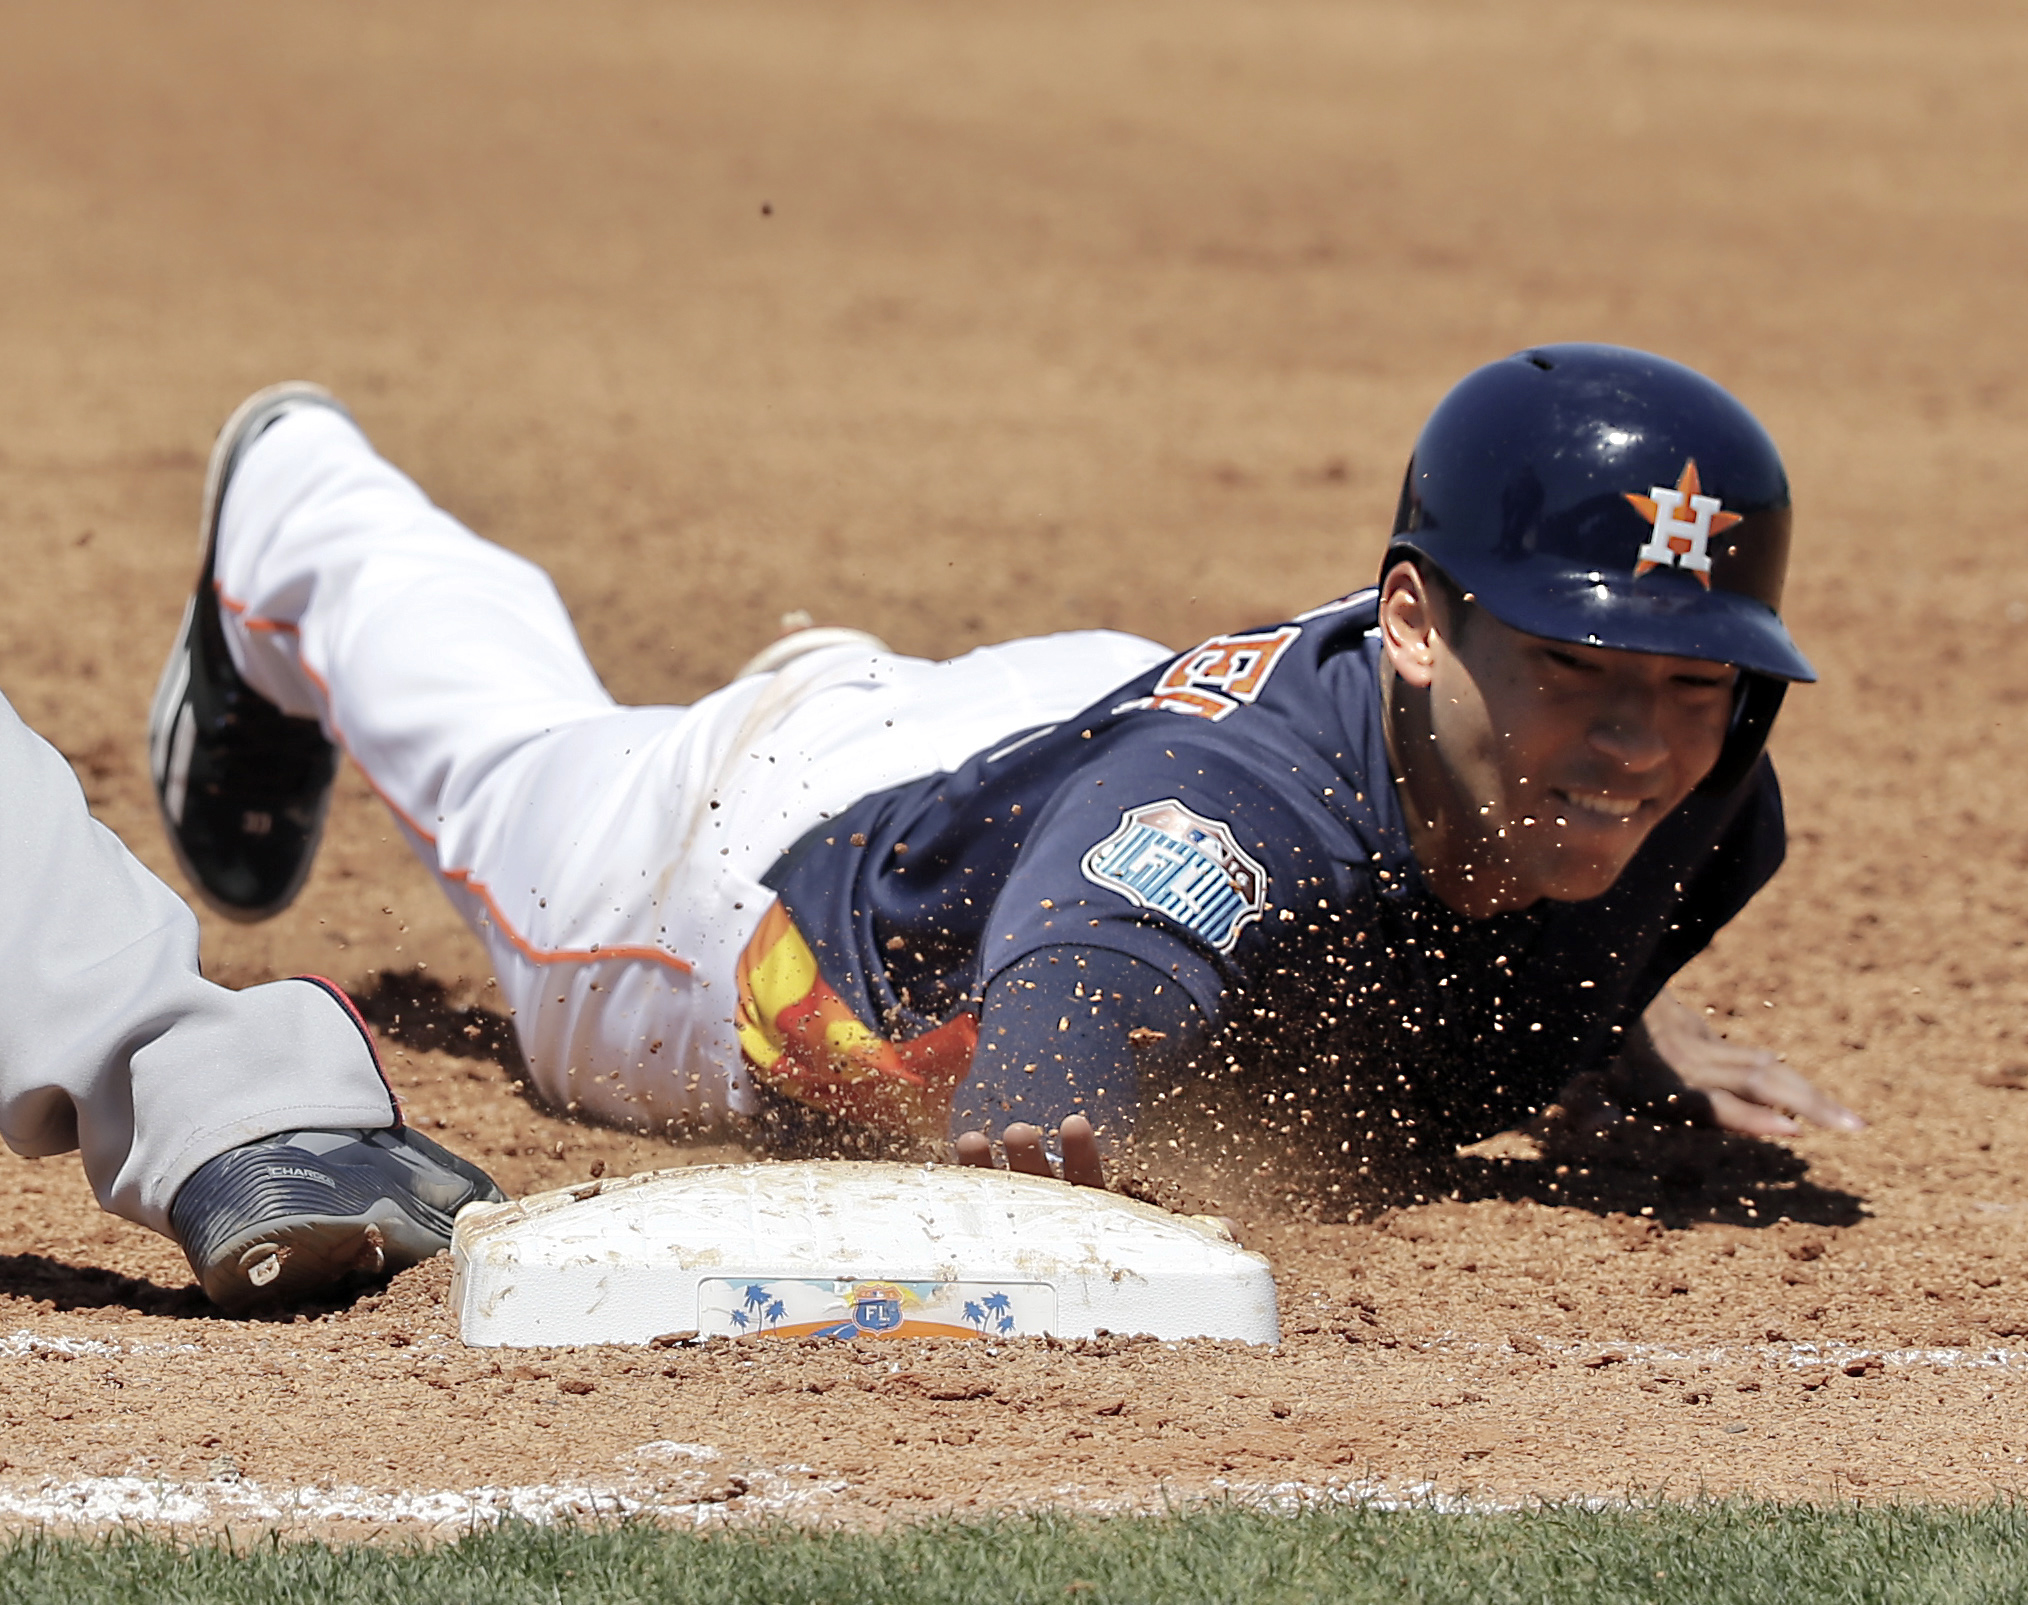 Houston Astros' Carlos Correa dives safely back to first base in a pick off attempt by the Atlanta Braves during the fourth inning of a spring training baseball game, Tuesday, March 22, 2016, in Kissimmee, Fla. (AP Photo/John Raoux)